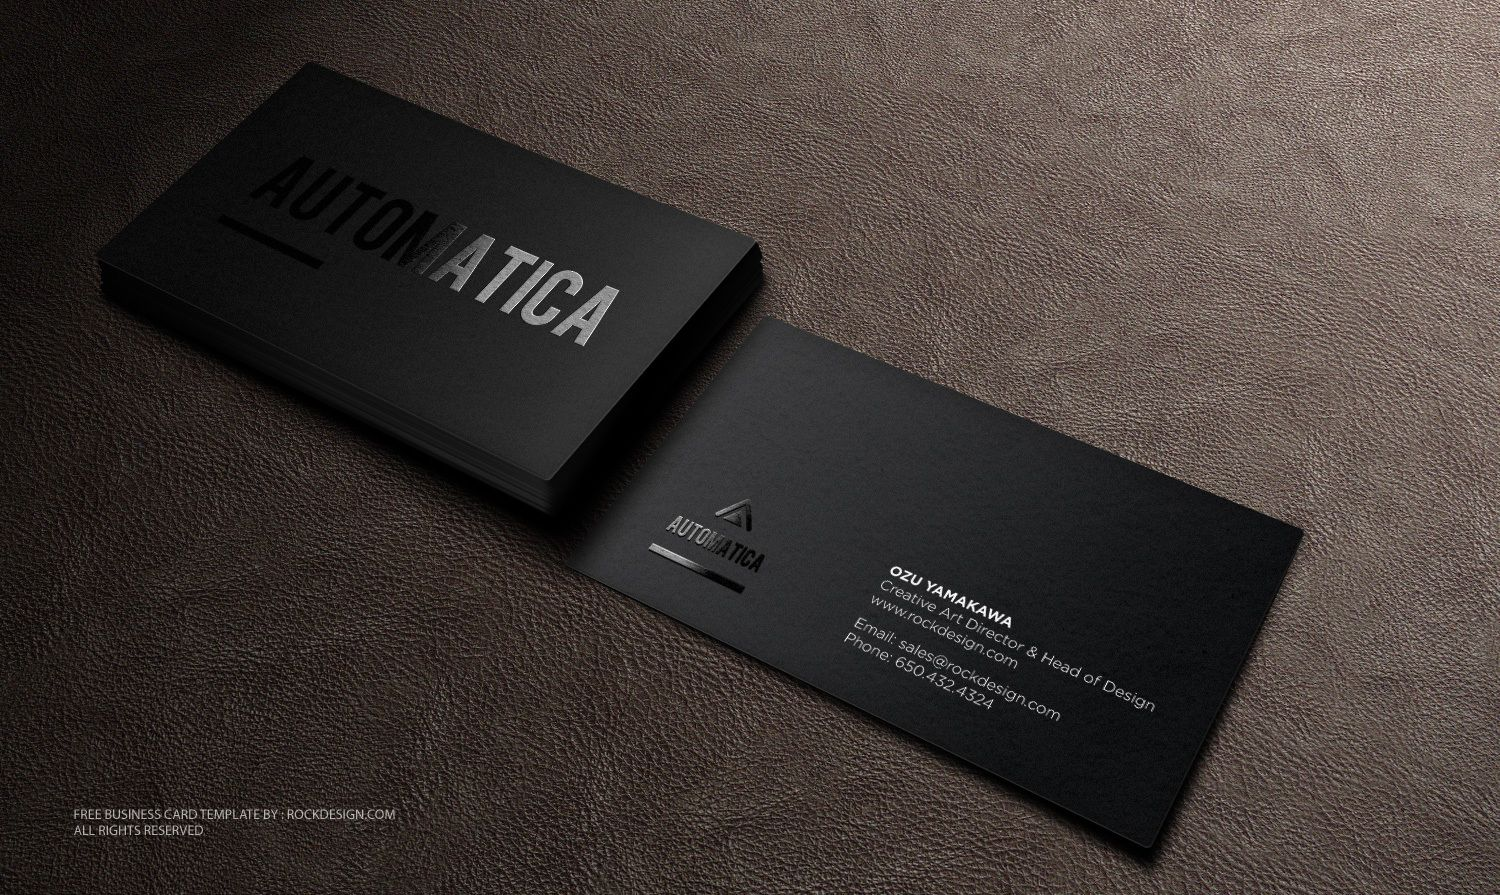 Black Business Card Template Download Free Design Templates - Free business cards template